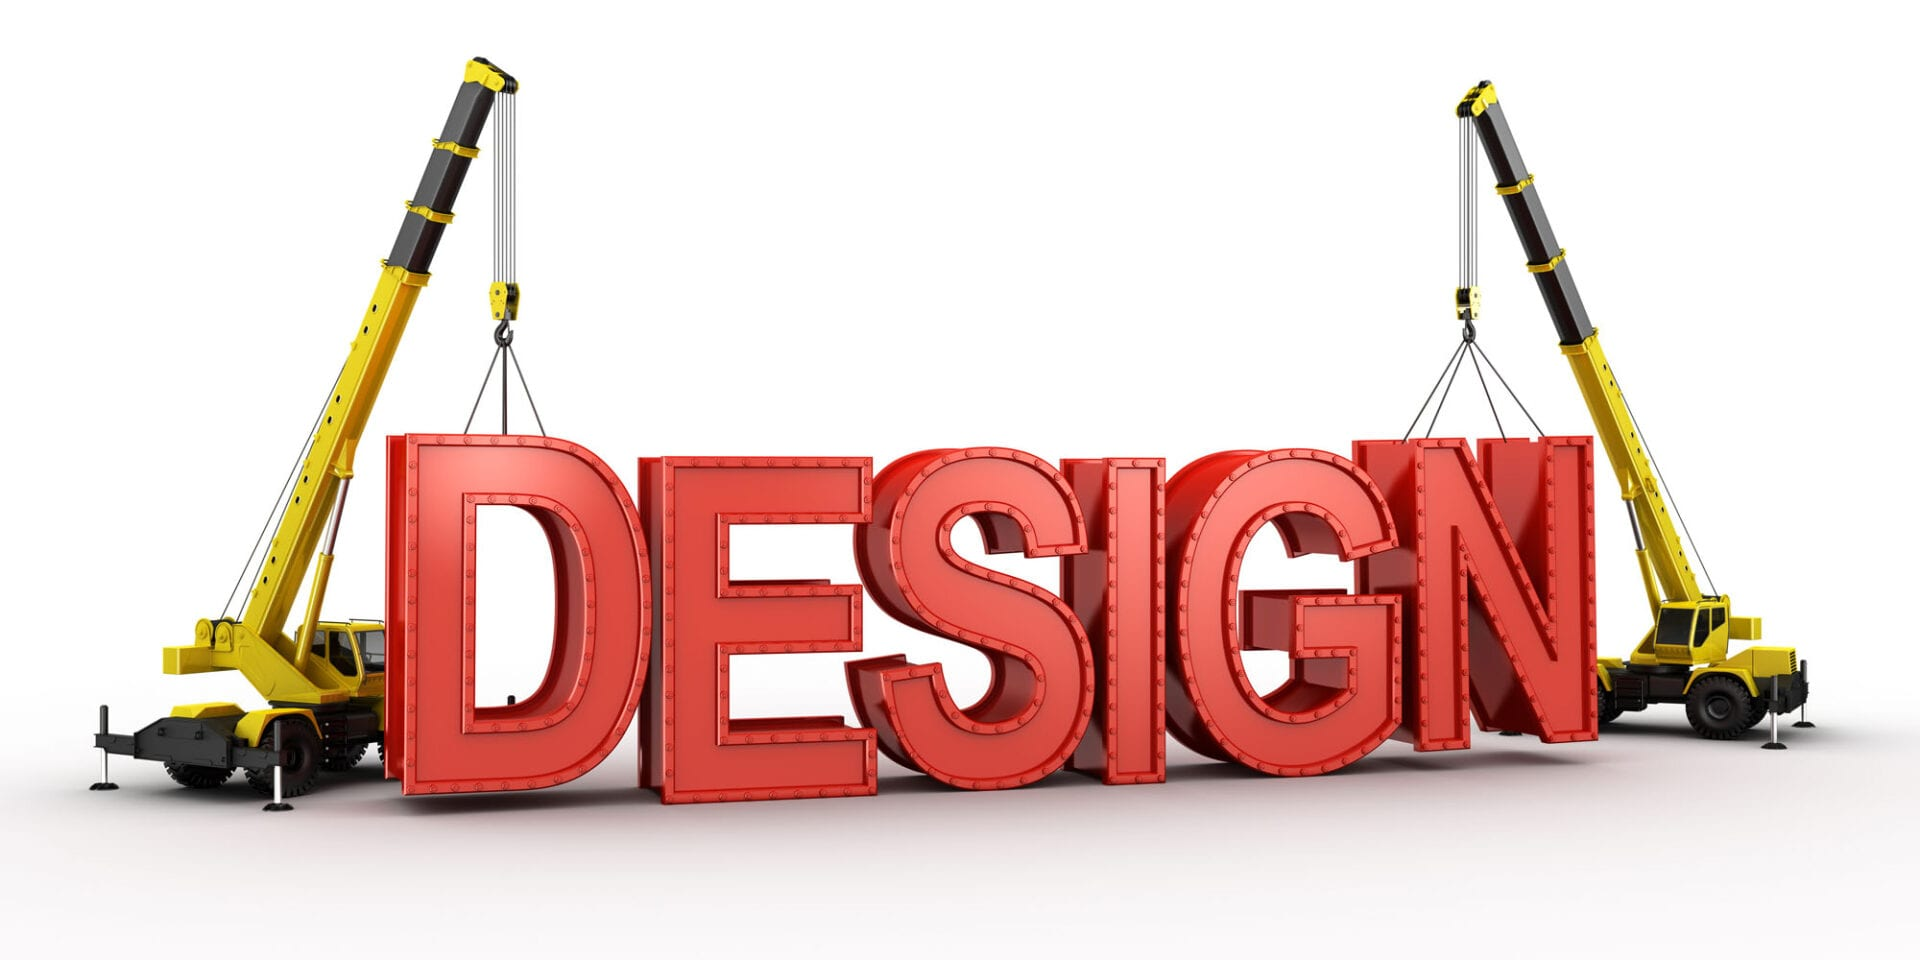 3d rendering of a mobile crane lifting the last letters in place to spell the word DESIGN, to illustrate the concept of building a design..